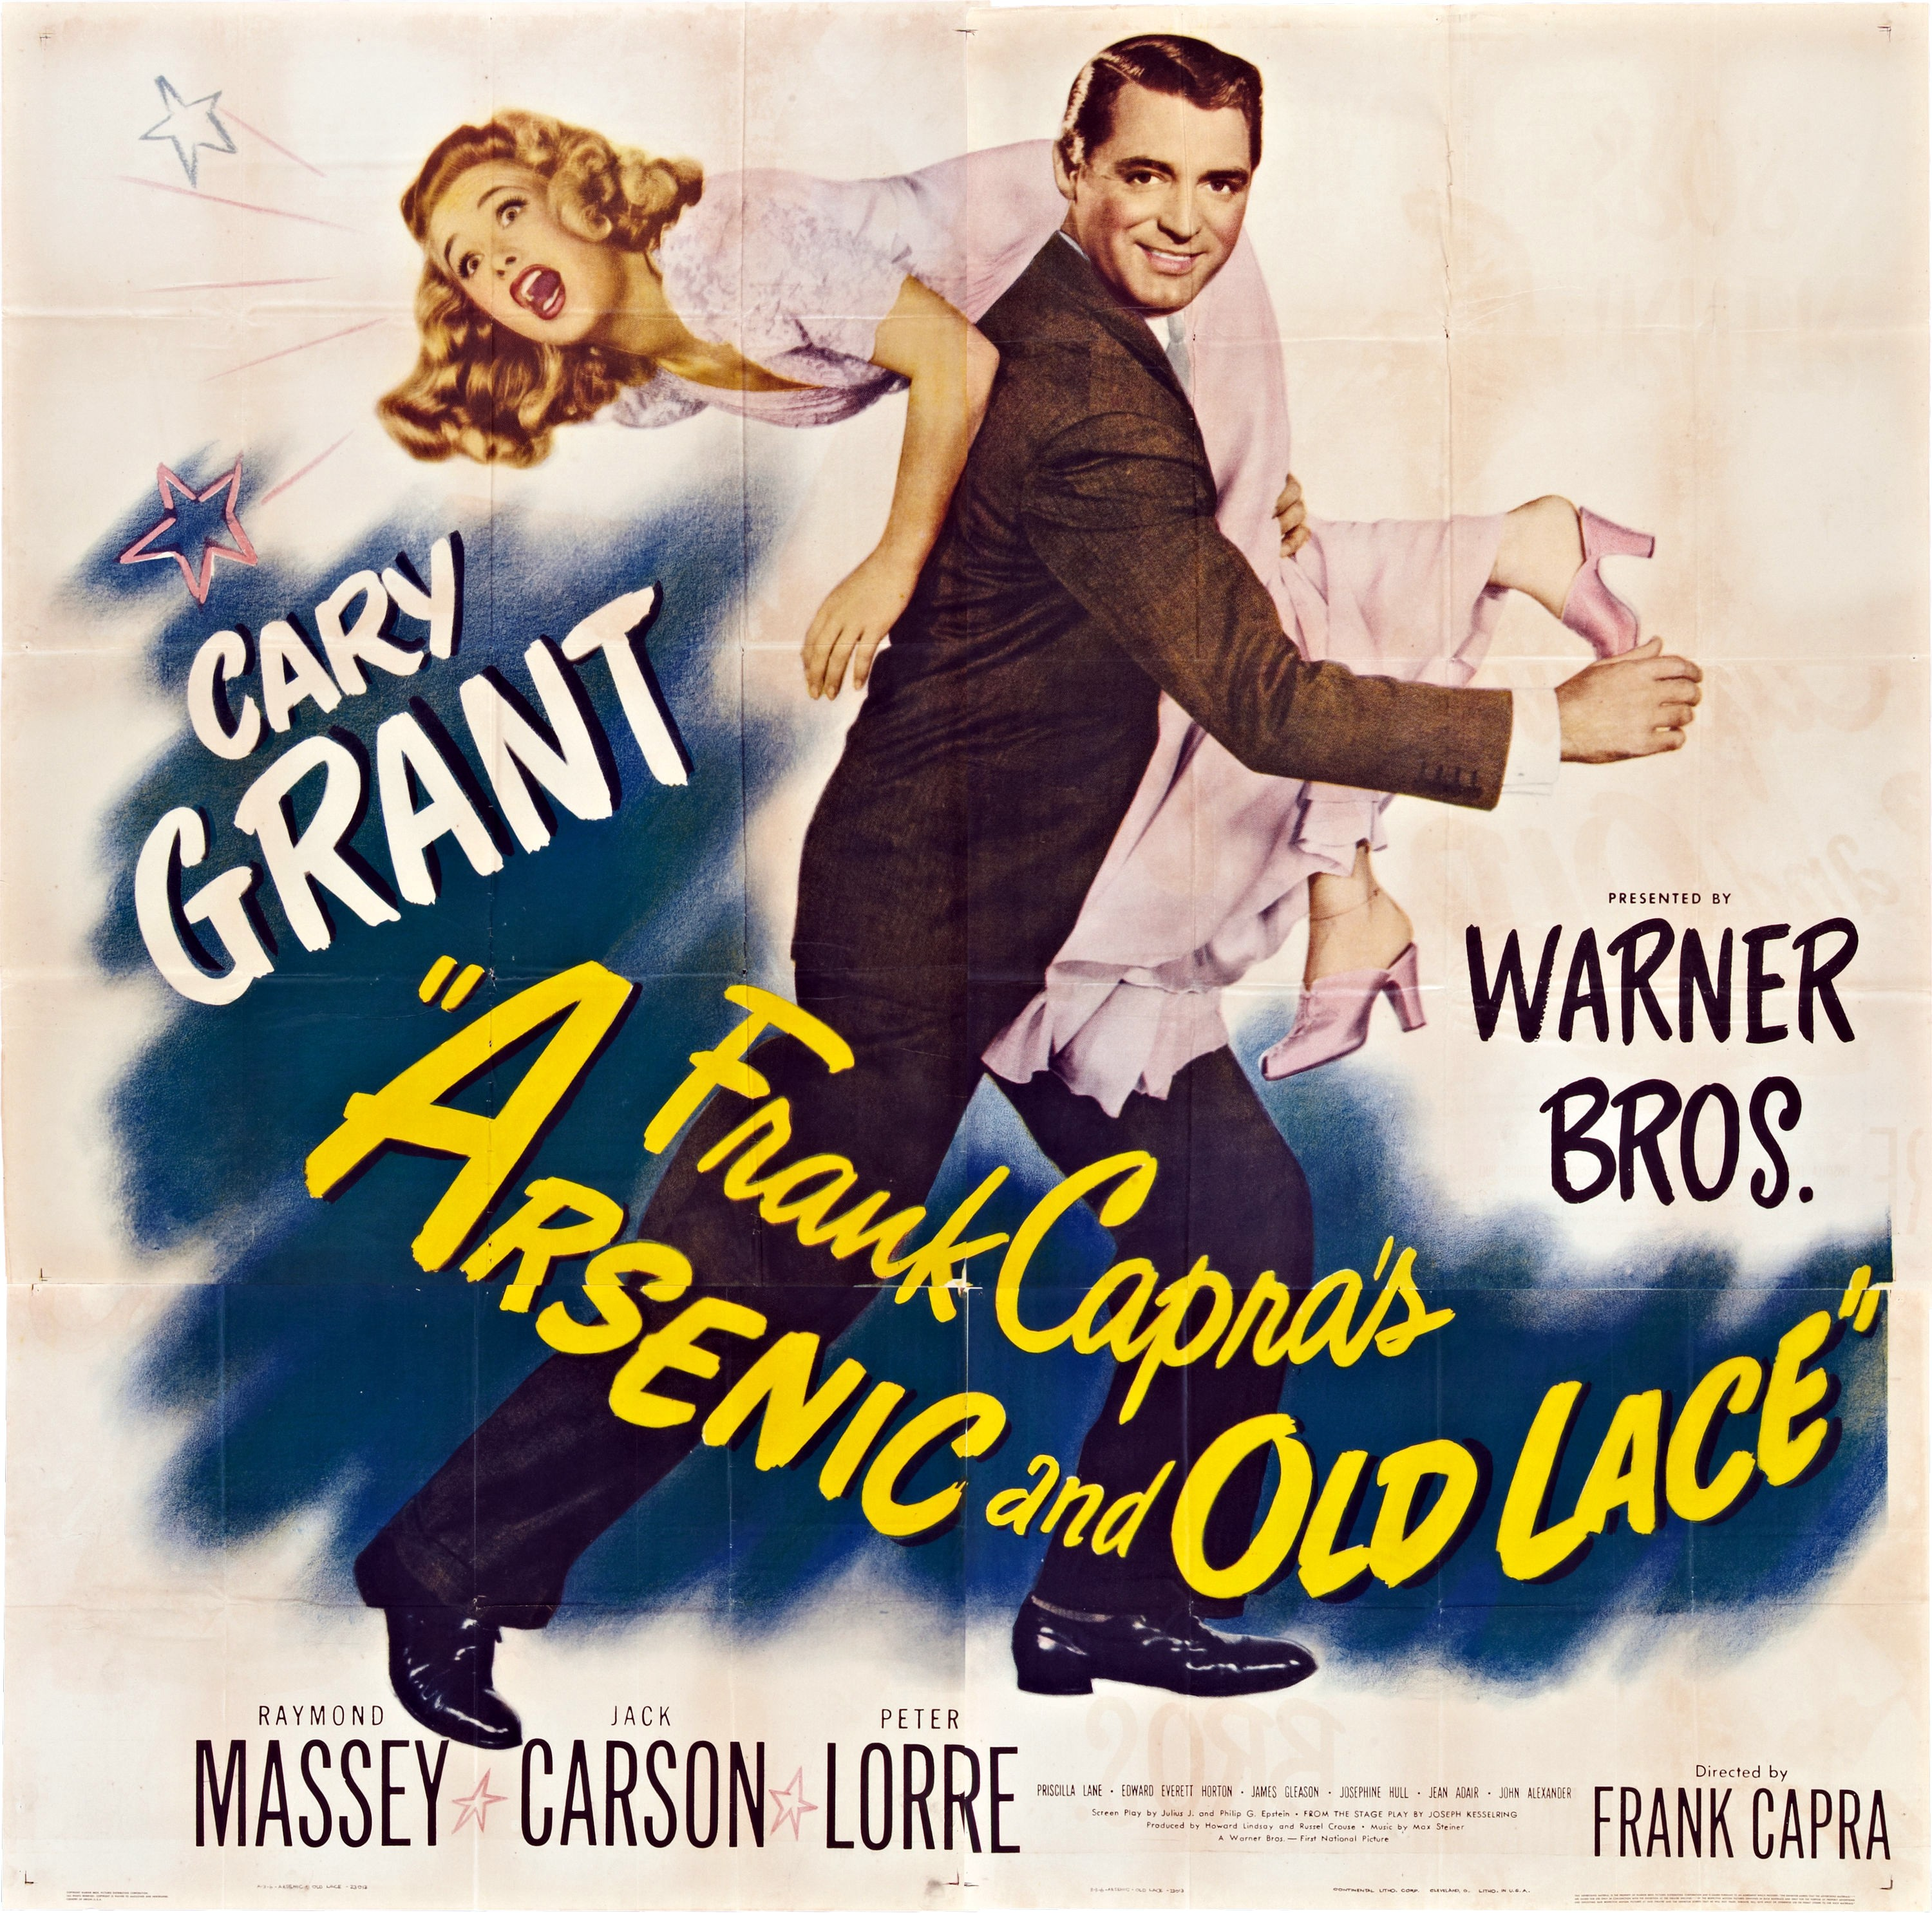 an analysis of the movie arsenic and old lace directed by frank capra Arsenic and old lace (1/10) movie clip arsenic and old lace (1944) - imdb - directed by frank capra with cary grant, priscilla lane, raymond massey, jack carson.